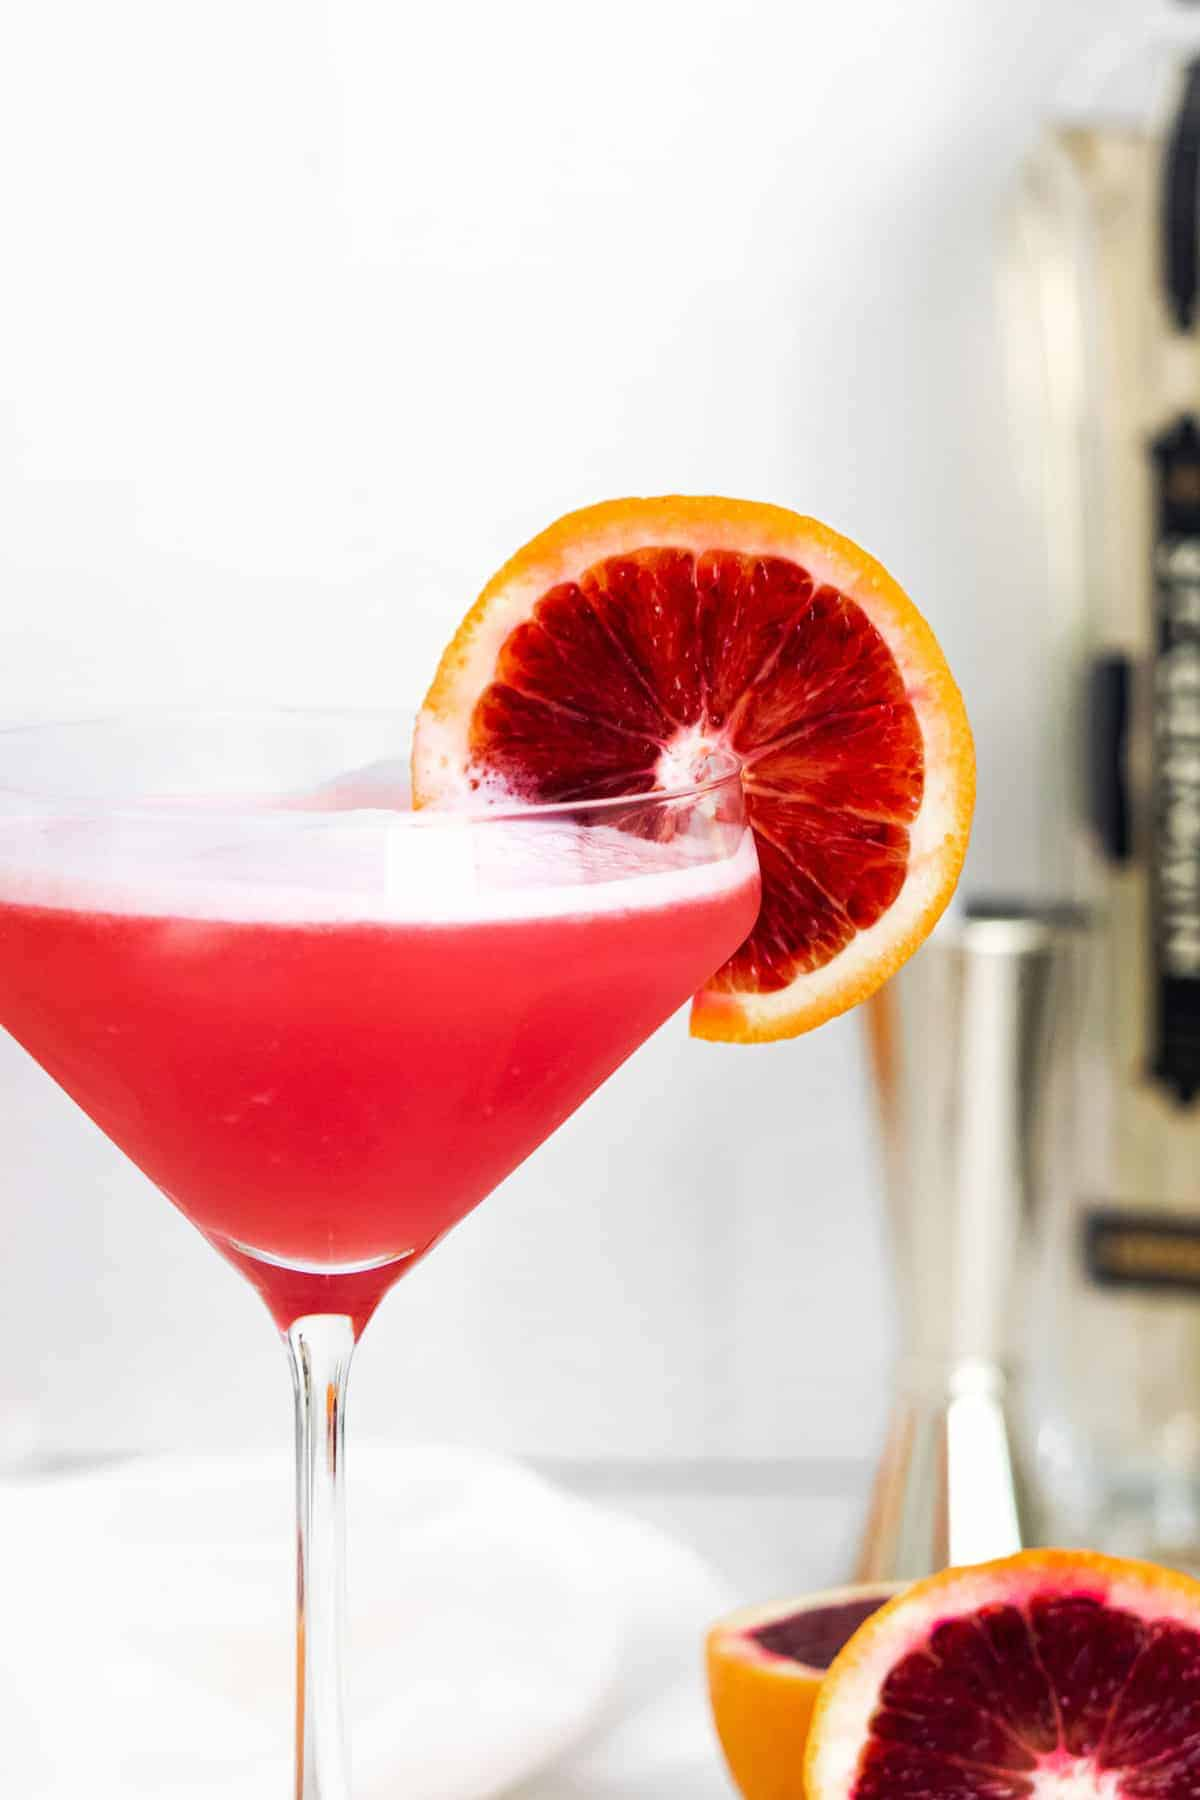 Close up of bright red cocktail garnished with blood orange.